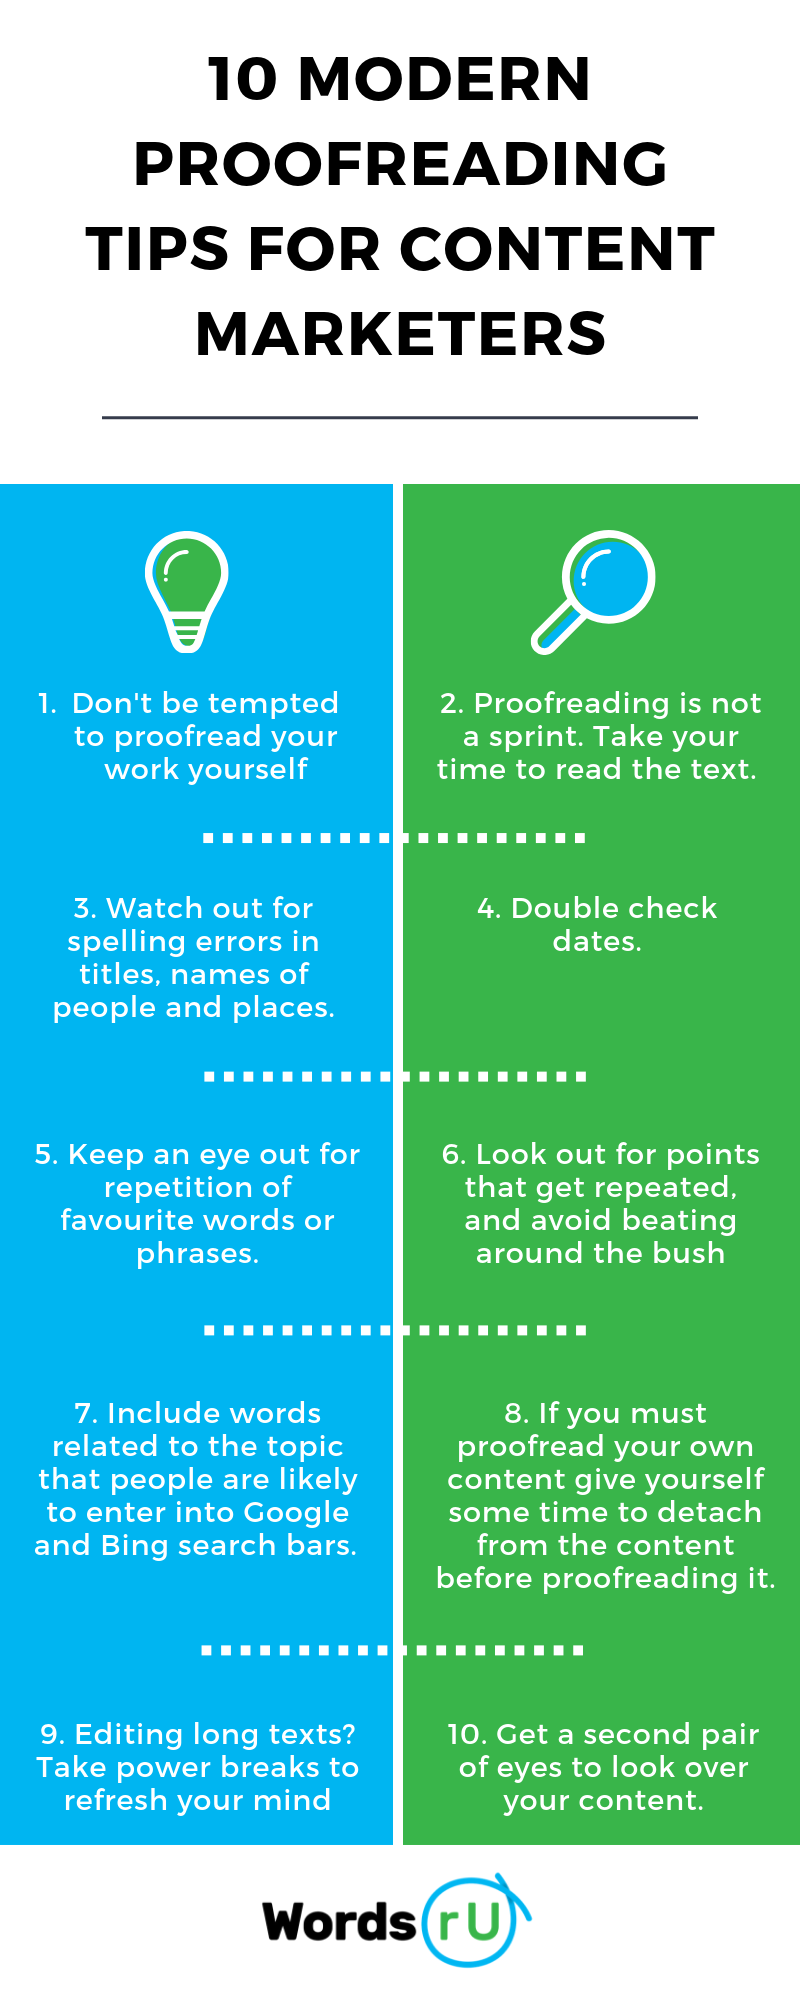 10 proofreading tips